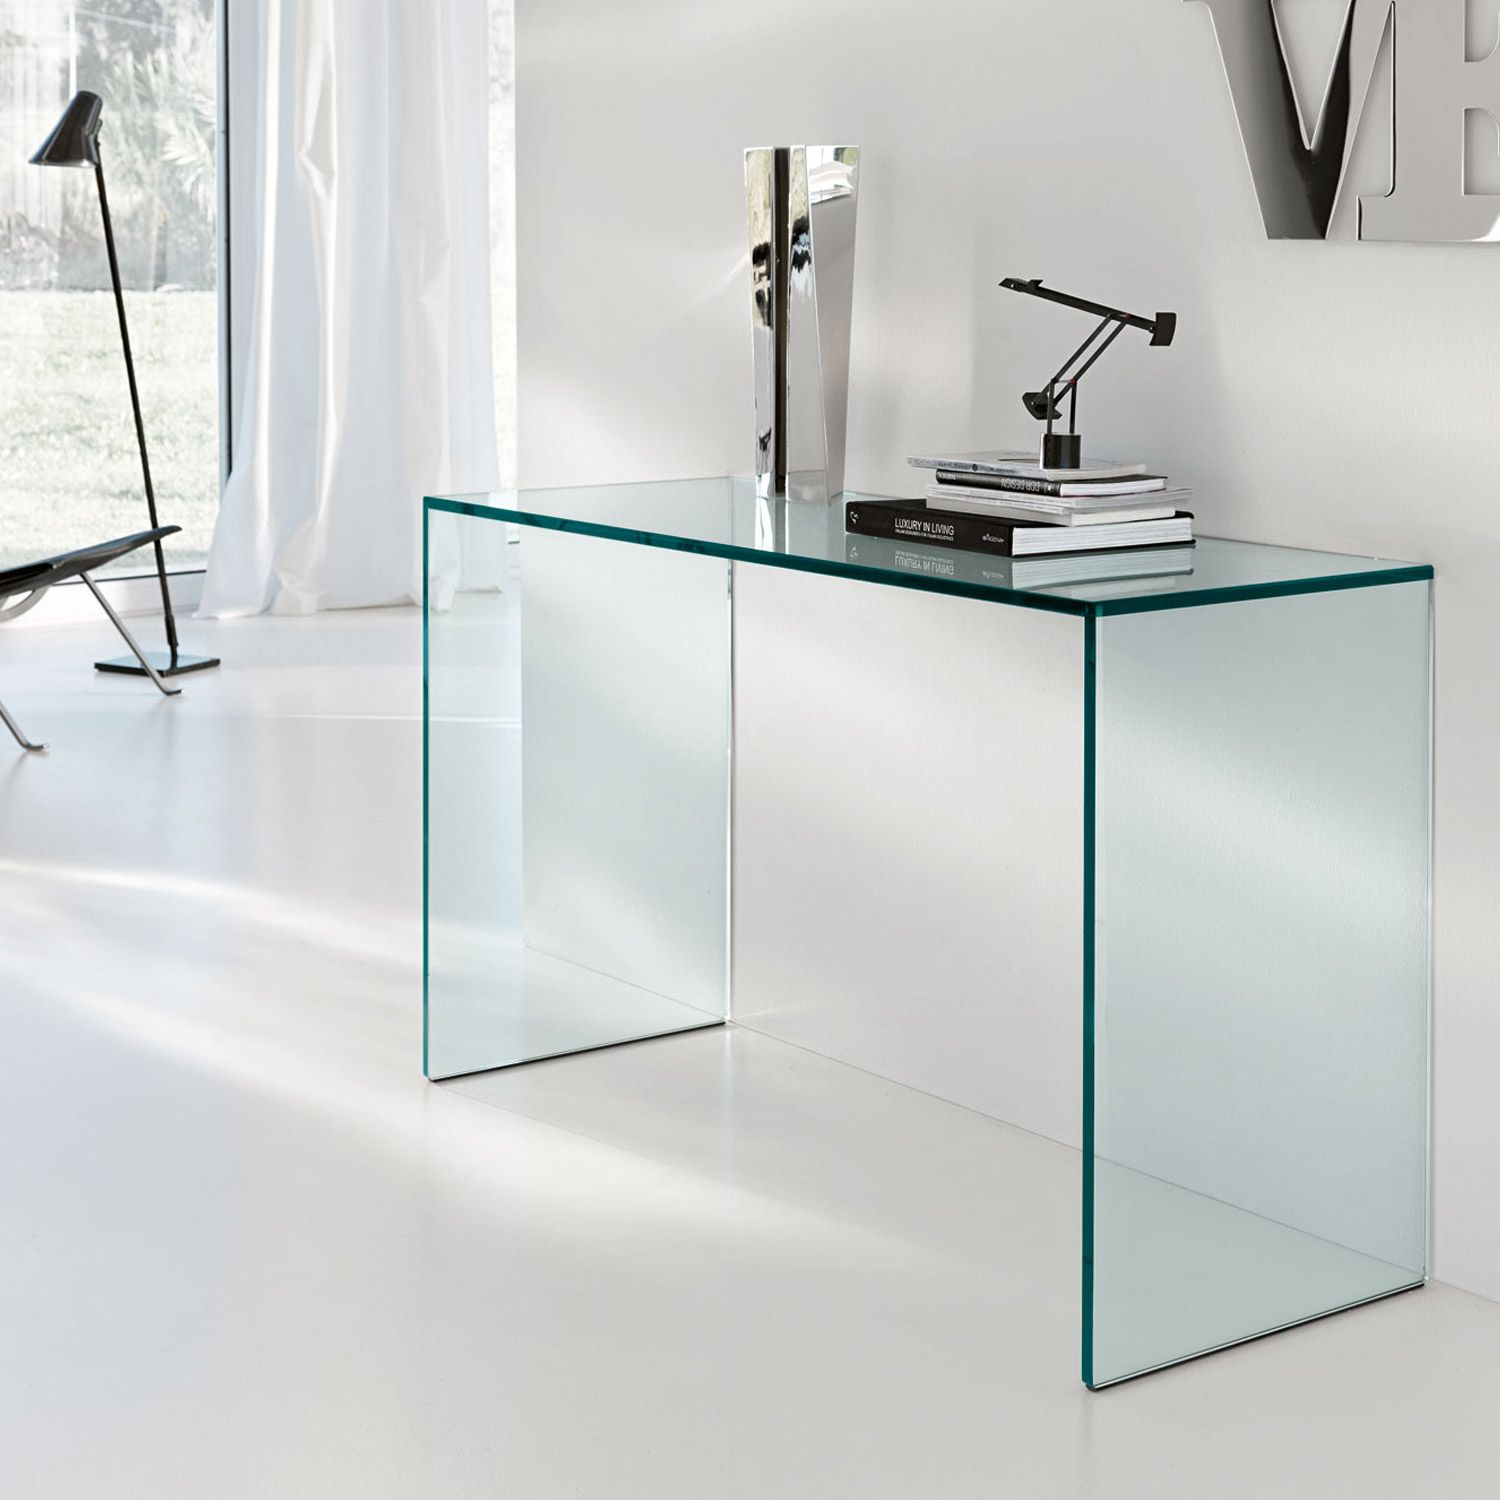 Iconic Glass console table manufactured in luxurious 15mm toughened glass. The Gulliver Glass Console Table by Tonelli is formed from 3 single sheets of glass and is available in 2 standard sizes, Clear or extra clear glass.  Bespoke sizes are available - please contact us for more information.